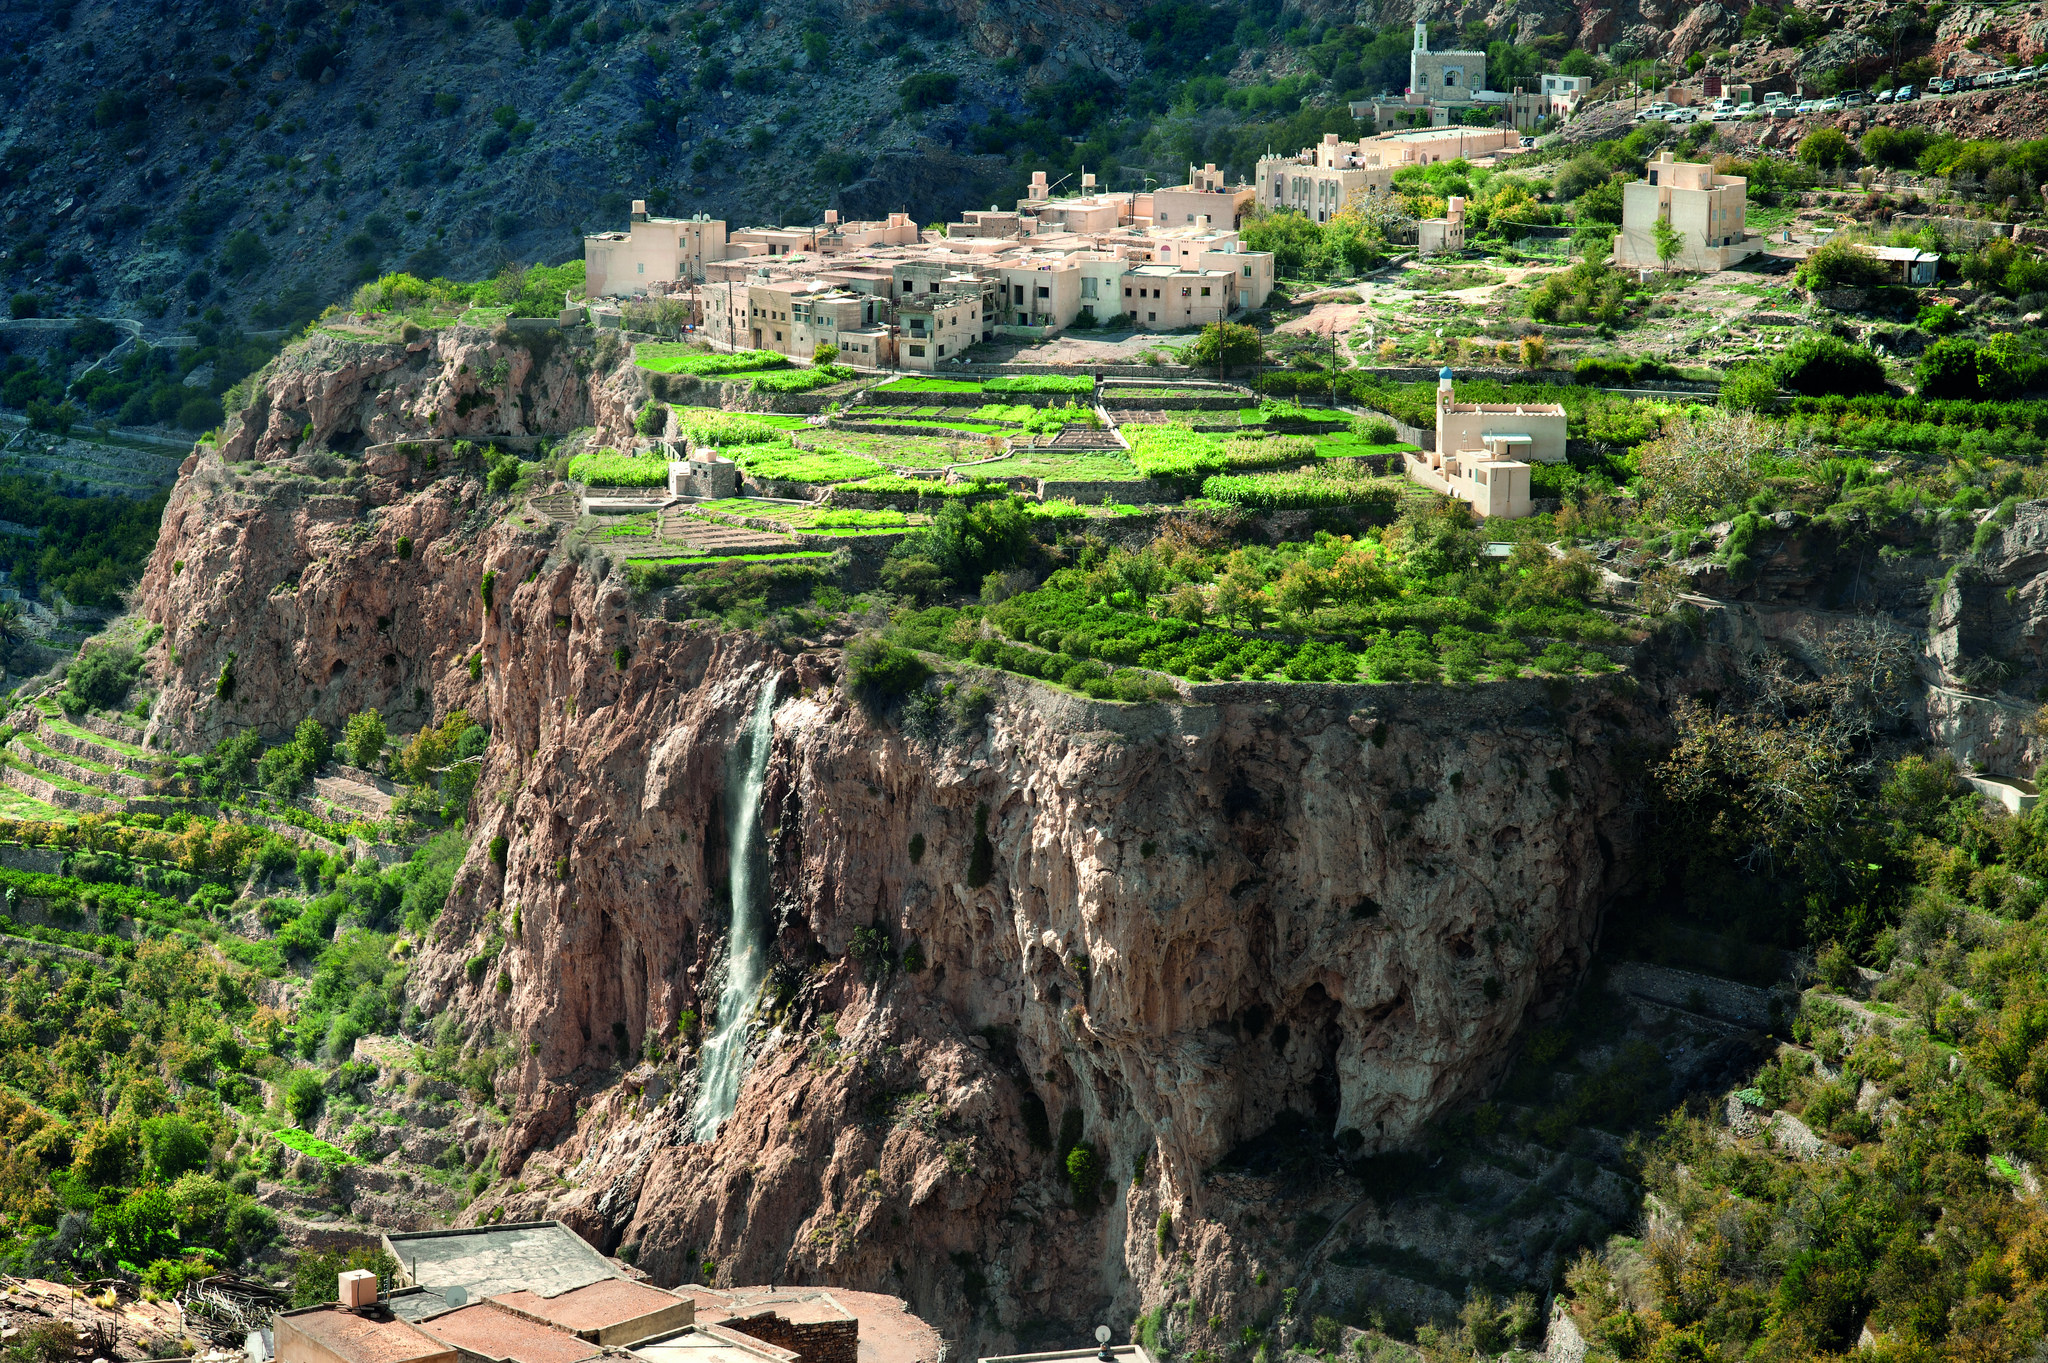 image of jebel akhdar green mountains of oman